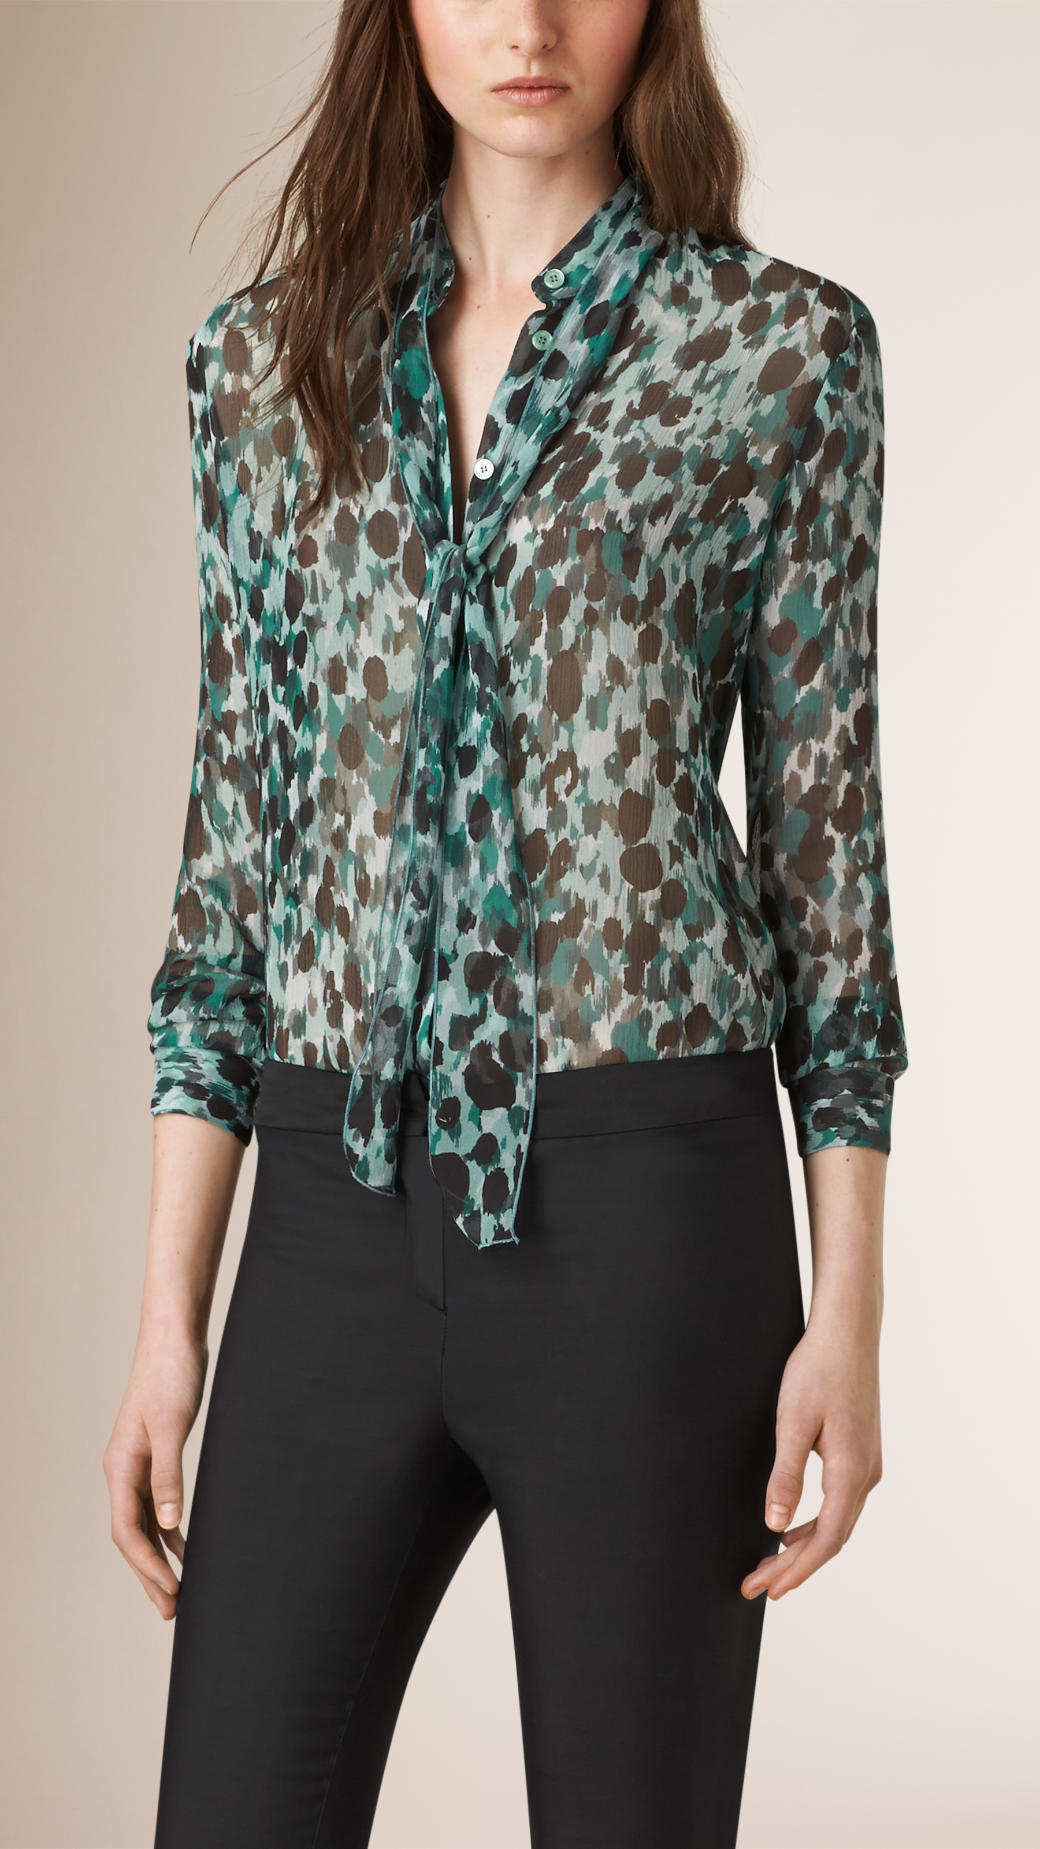 5481e42c8bdf7e Lyst - Burberry Tie Detail Patterned Silk Blouse in Green